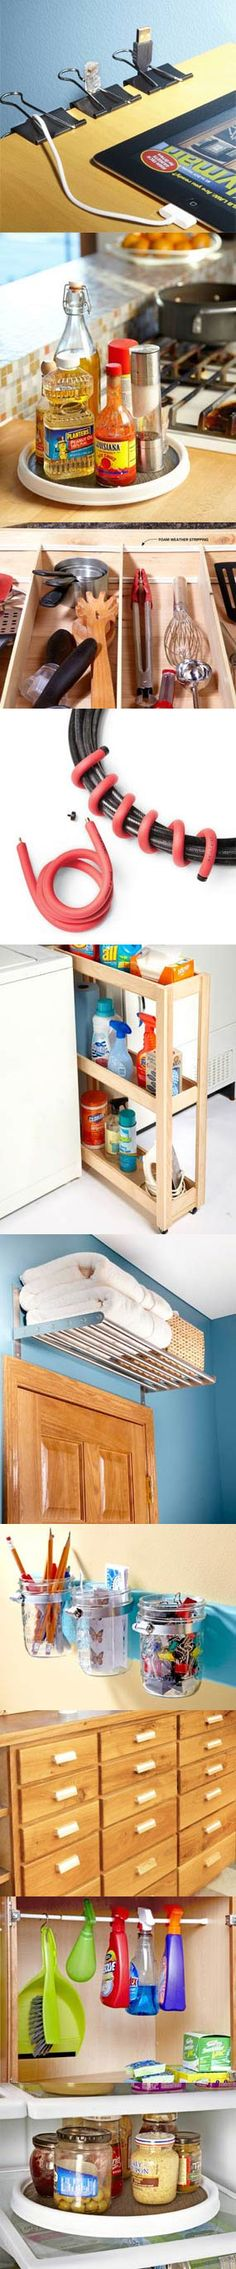 Make organization easy and simplify your life with this collection of tips, hints, ideas and products that quickly solve clutter problems in kitchens, offices, laundry rooms, shops and more. Find the other 8 easy organization tips at http://www.familyhandyman.com/DIY-Projects/Home-Organization/Instant-Organization/easy-organization/View-All